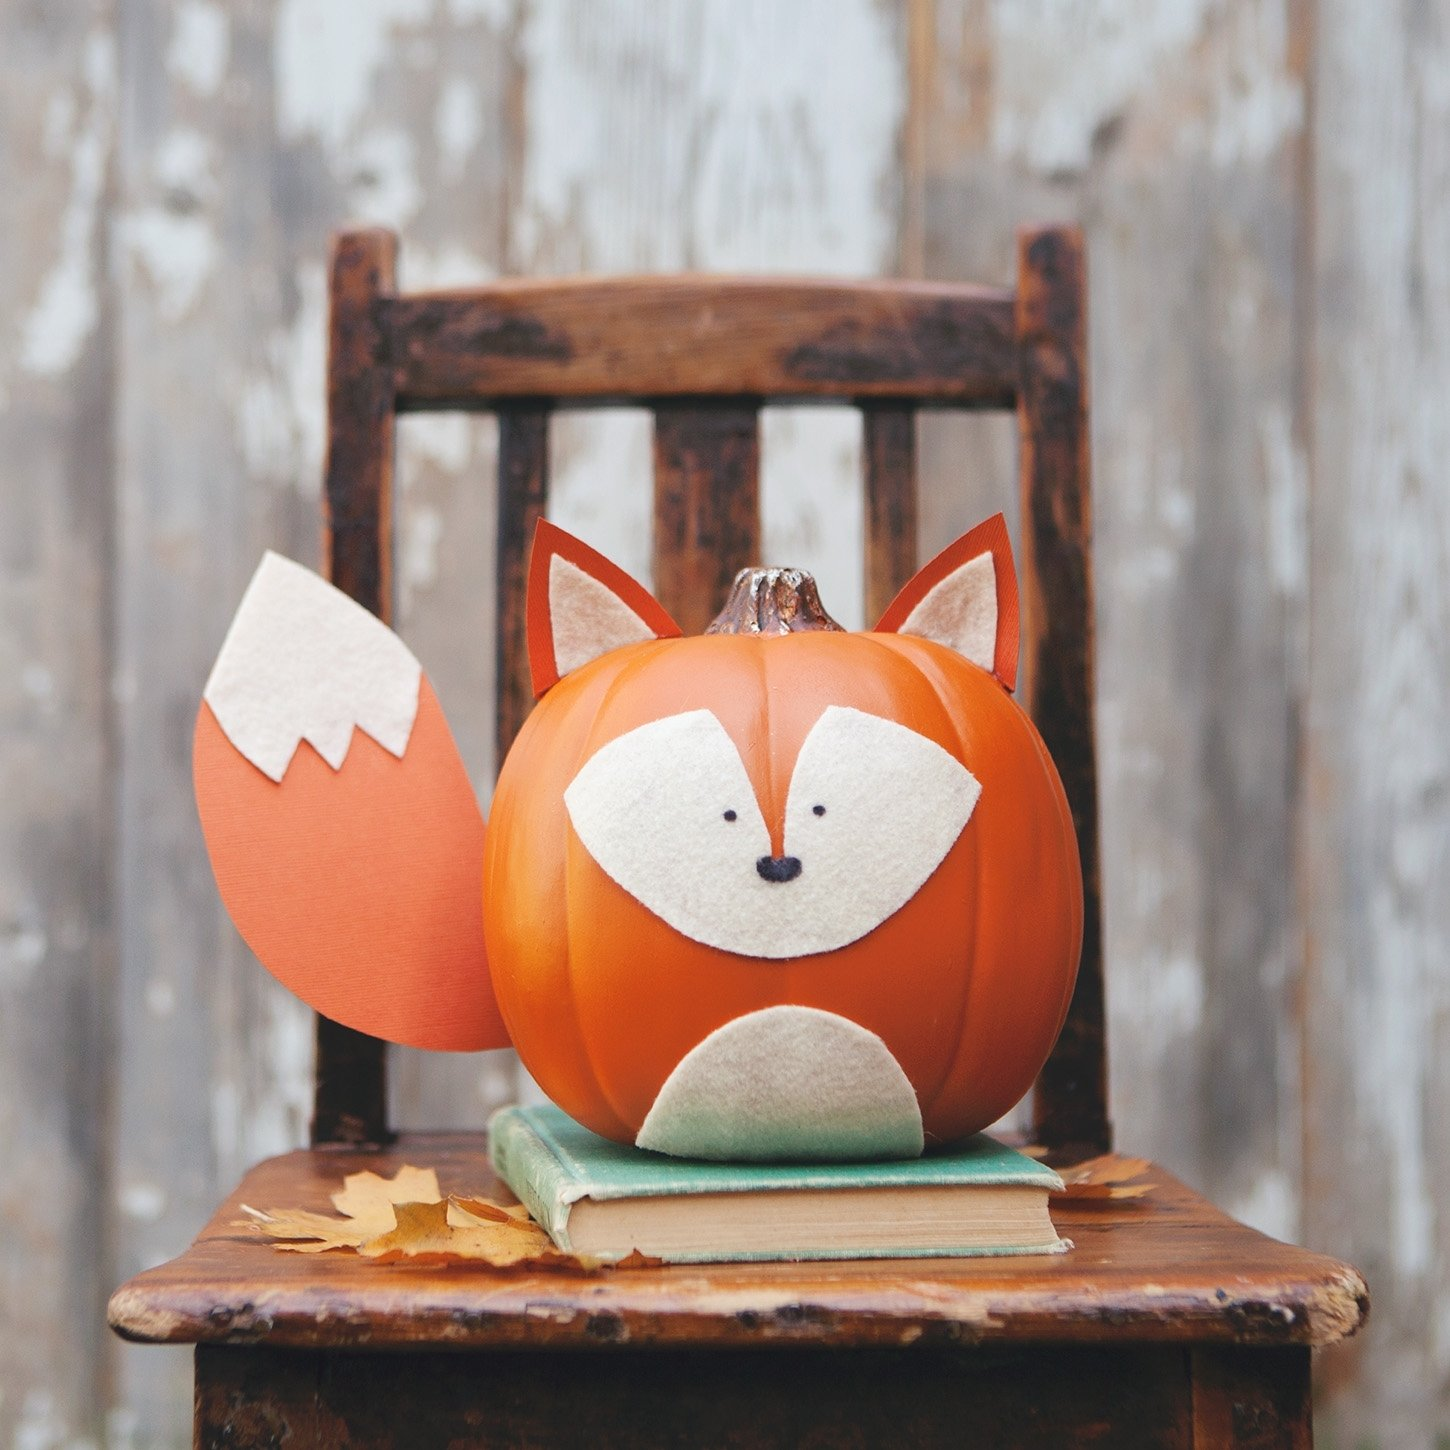 10 Beautiful Easy Pumpkin Decorating Ideas Without Carving Pumpkin woodland creature no carve pumpkins 2 2020